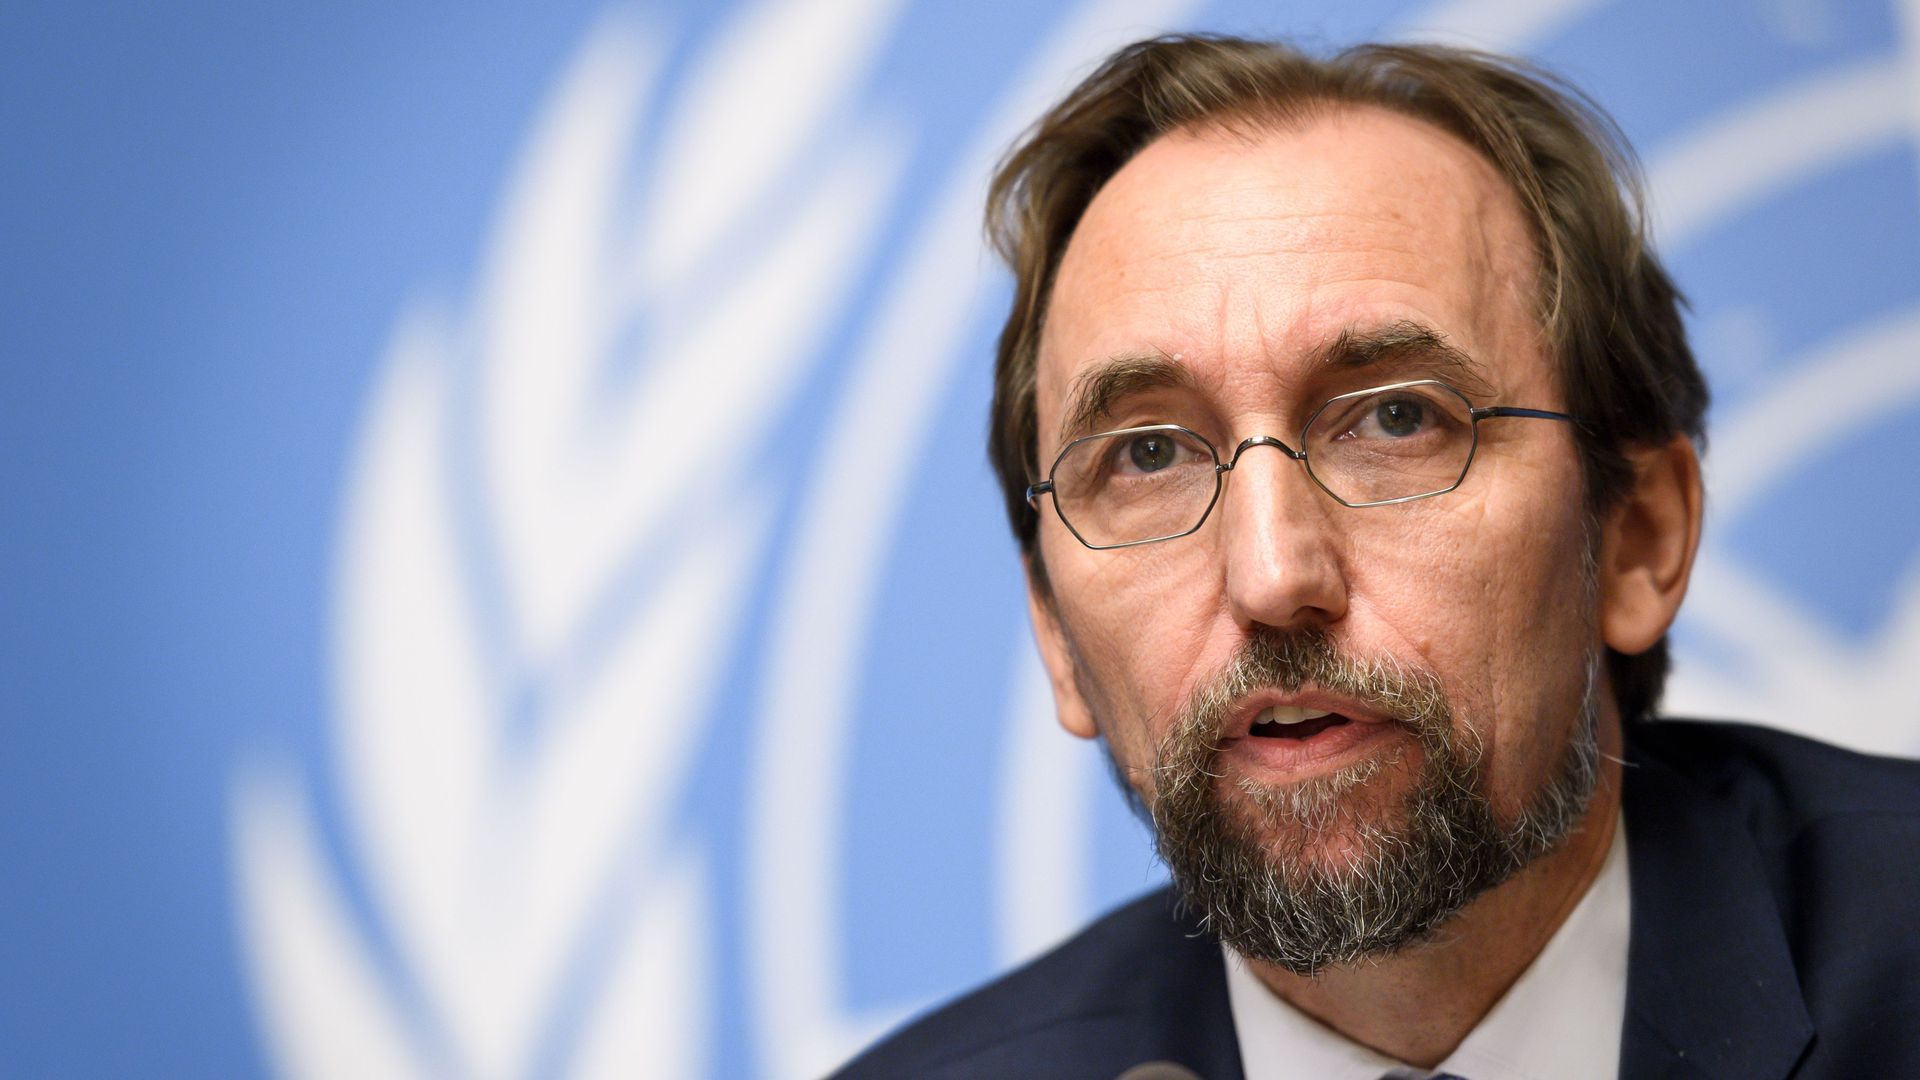 United Nations High Commissioner for Human Rights Zeid Ra'ad Al Hussein speaking during a press conference at the UN Offices in Geneva.